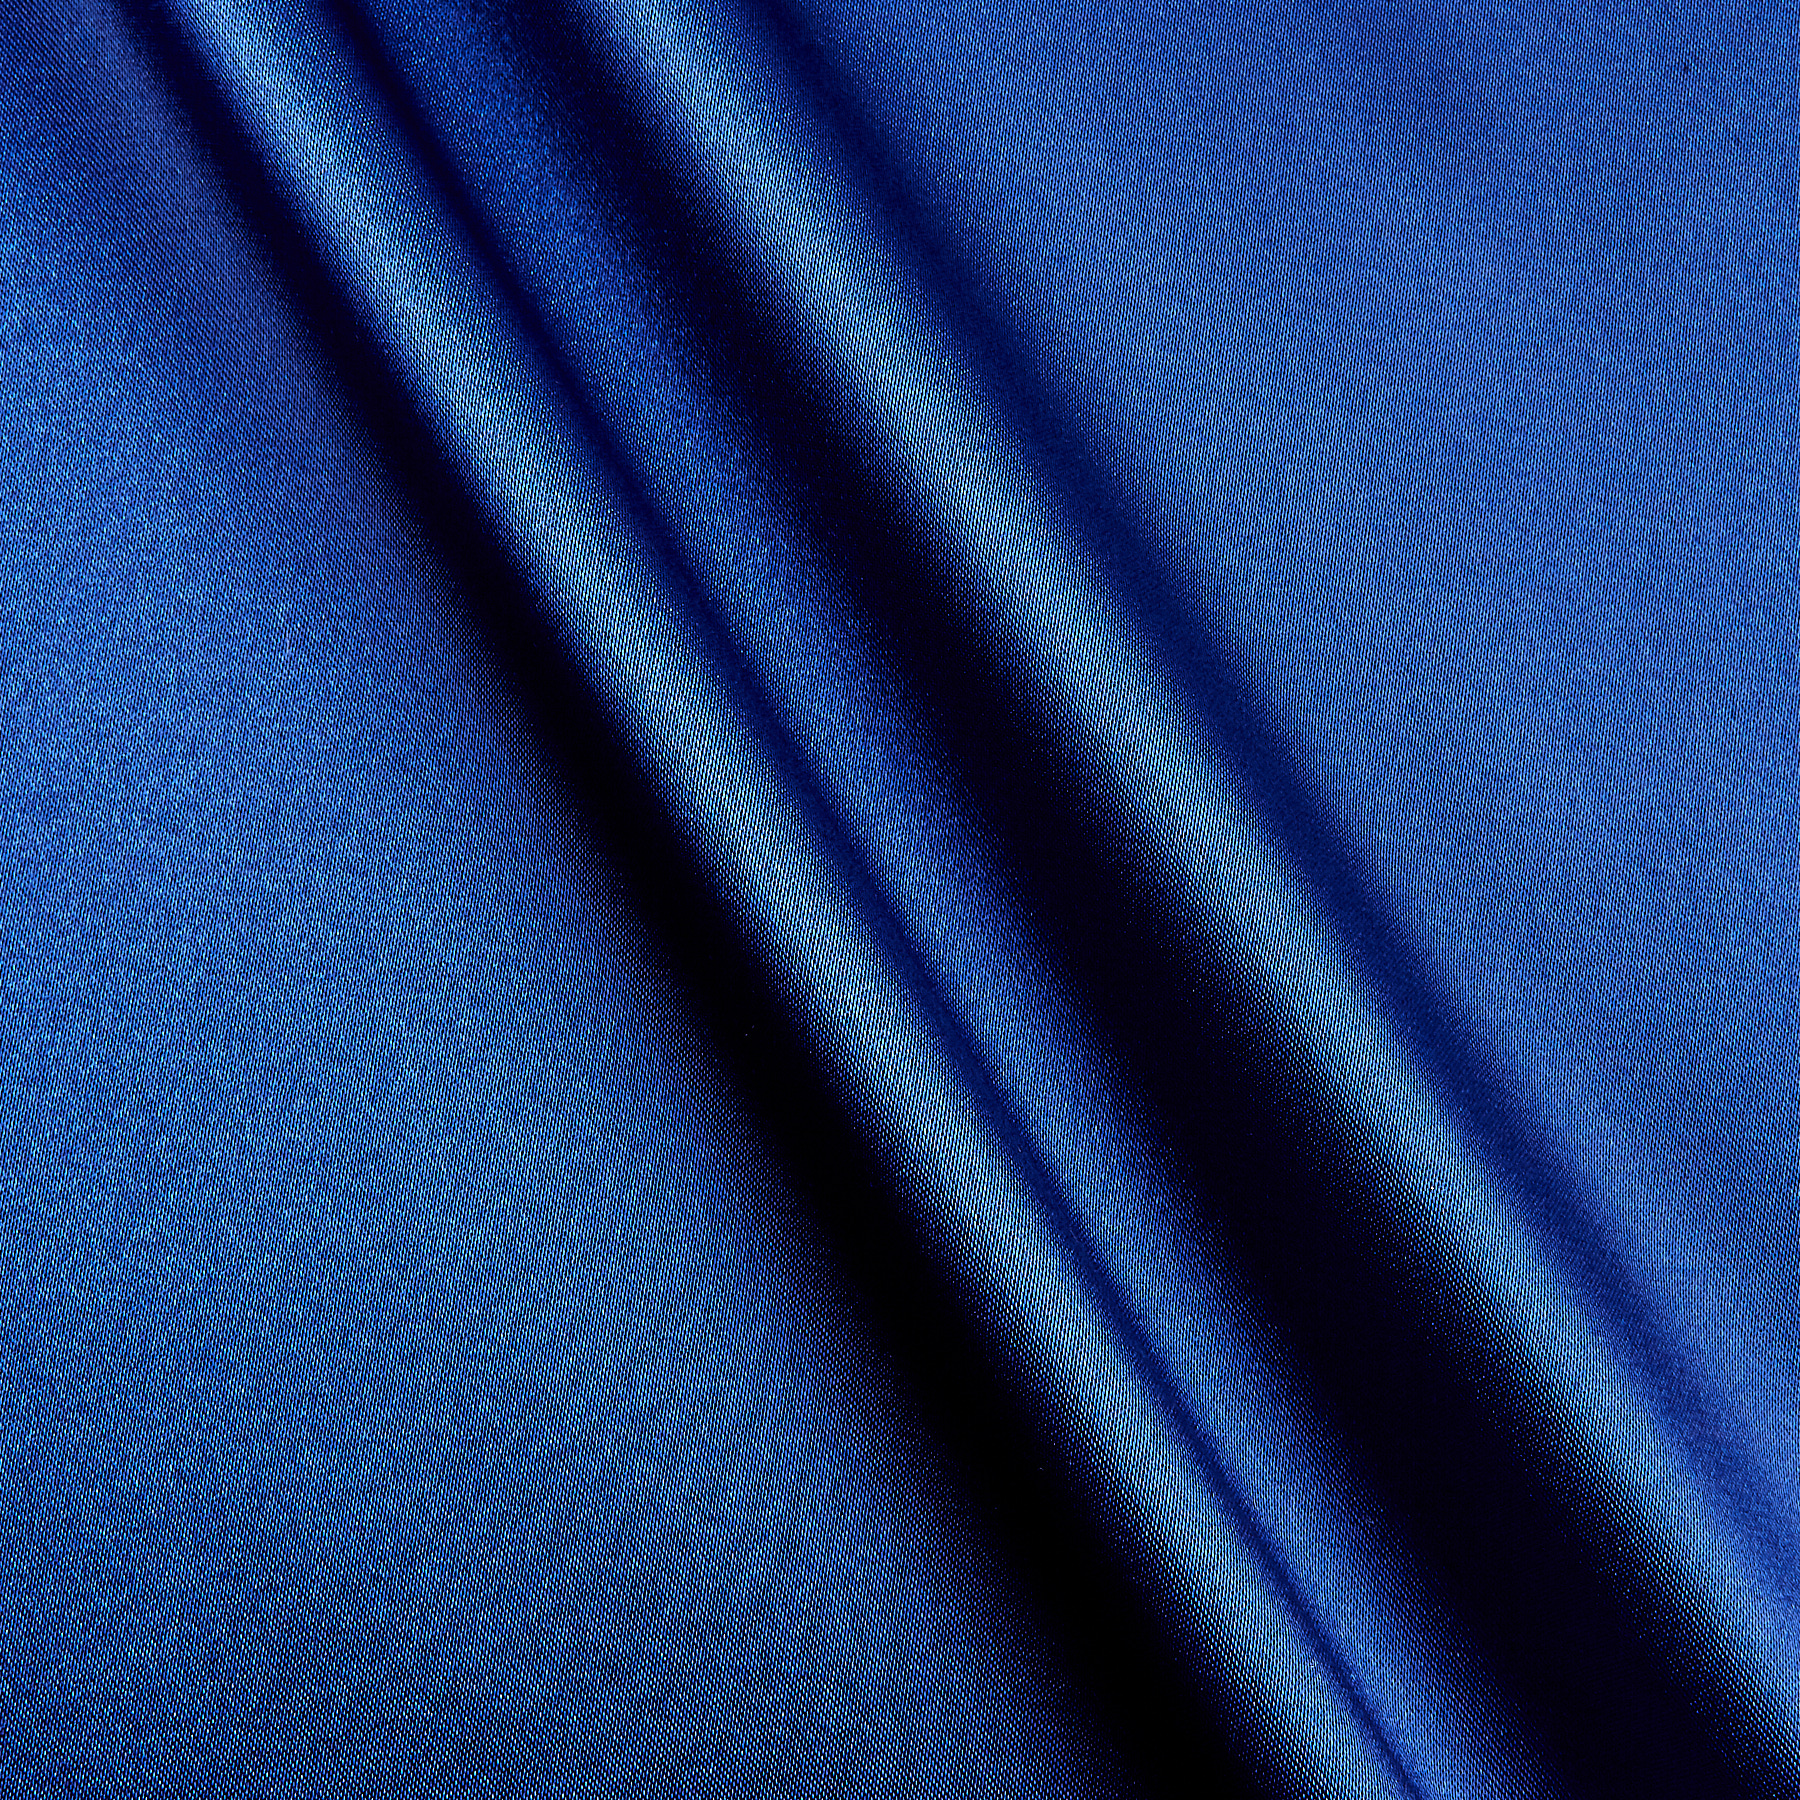 Silky Satin Charmeuse Solid Royal Fabric by Shannon in USA